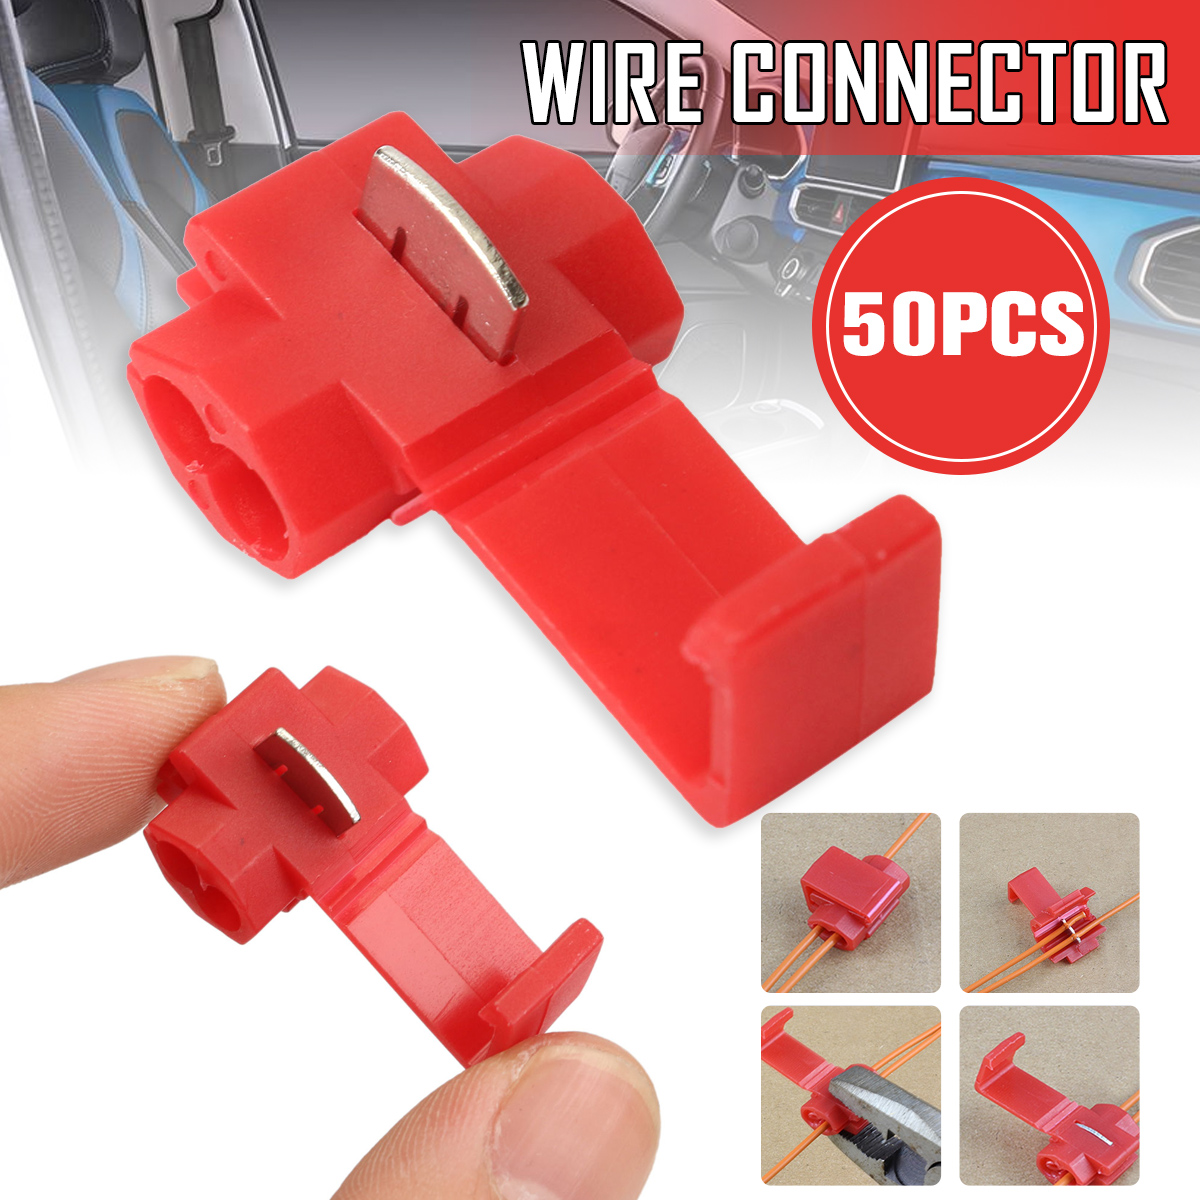 50x Lock Wire Electrical Cable Connector Red Insulated Quick Splice Terminals Crimp For Car Electrical Crimp Cable Snap